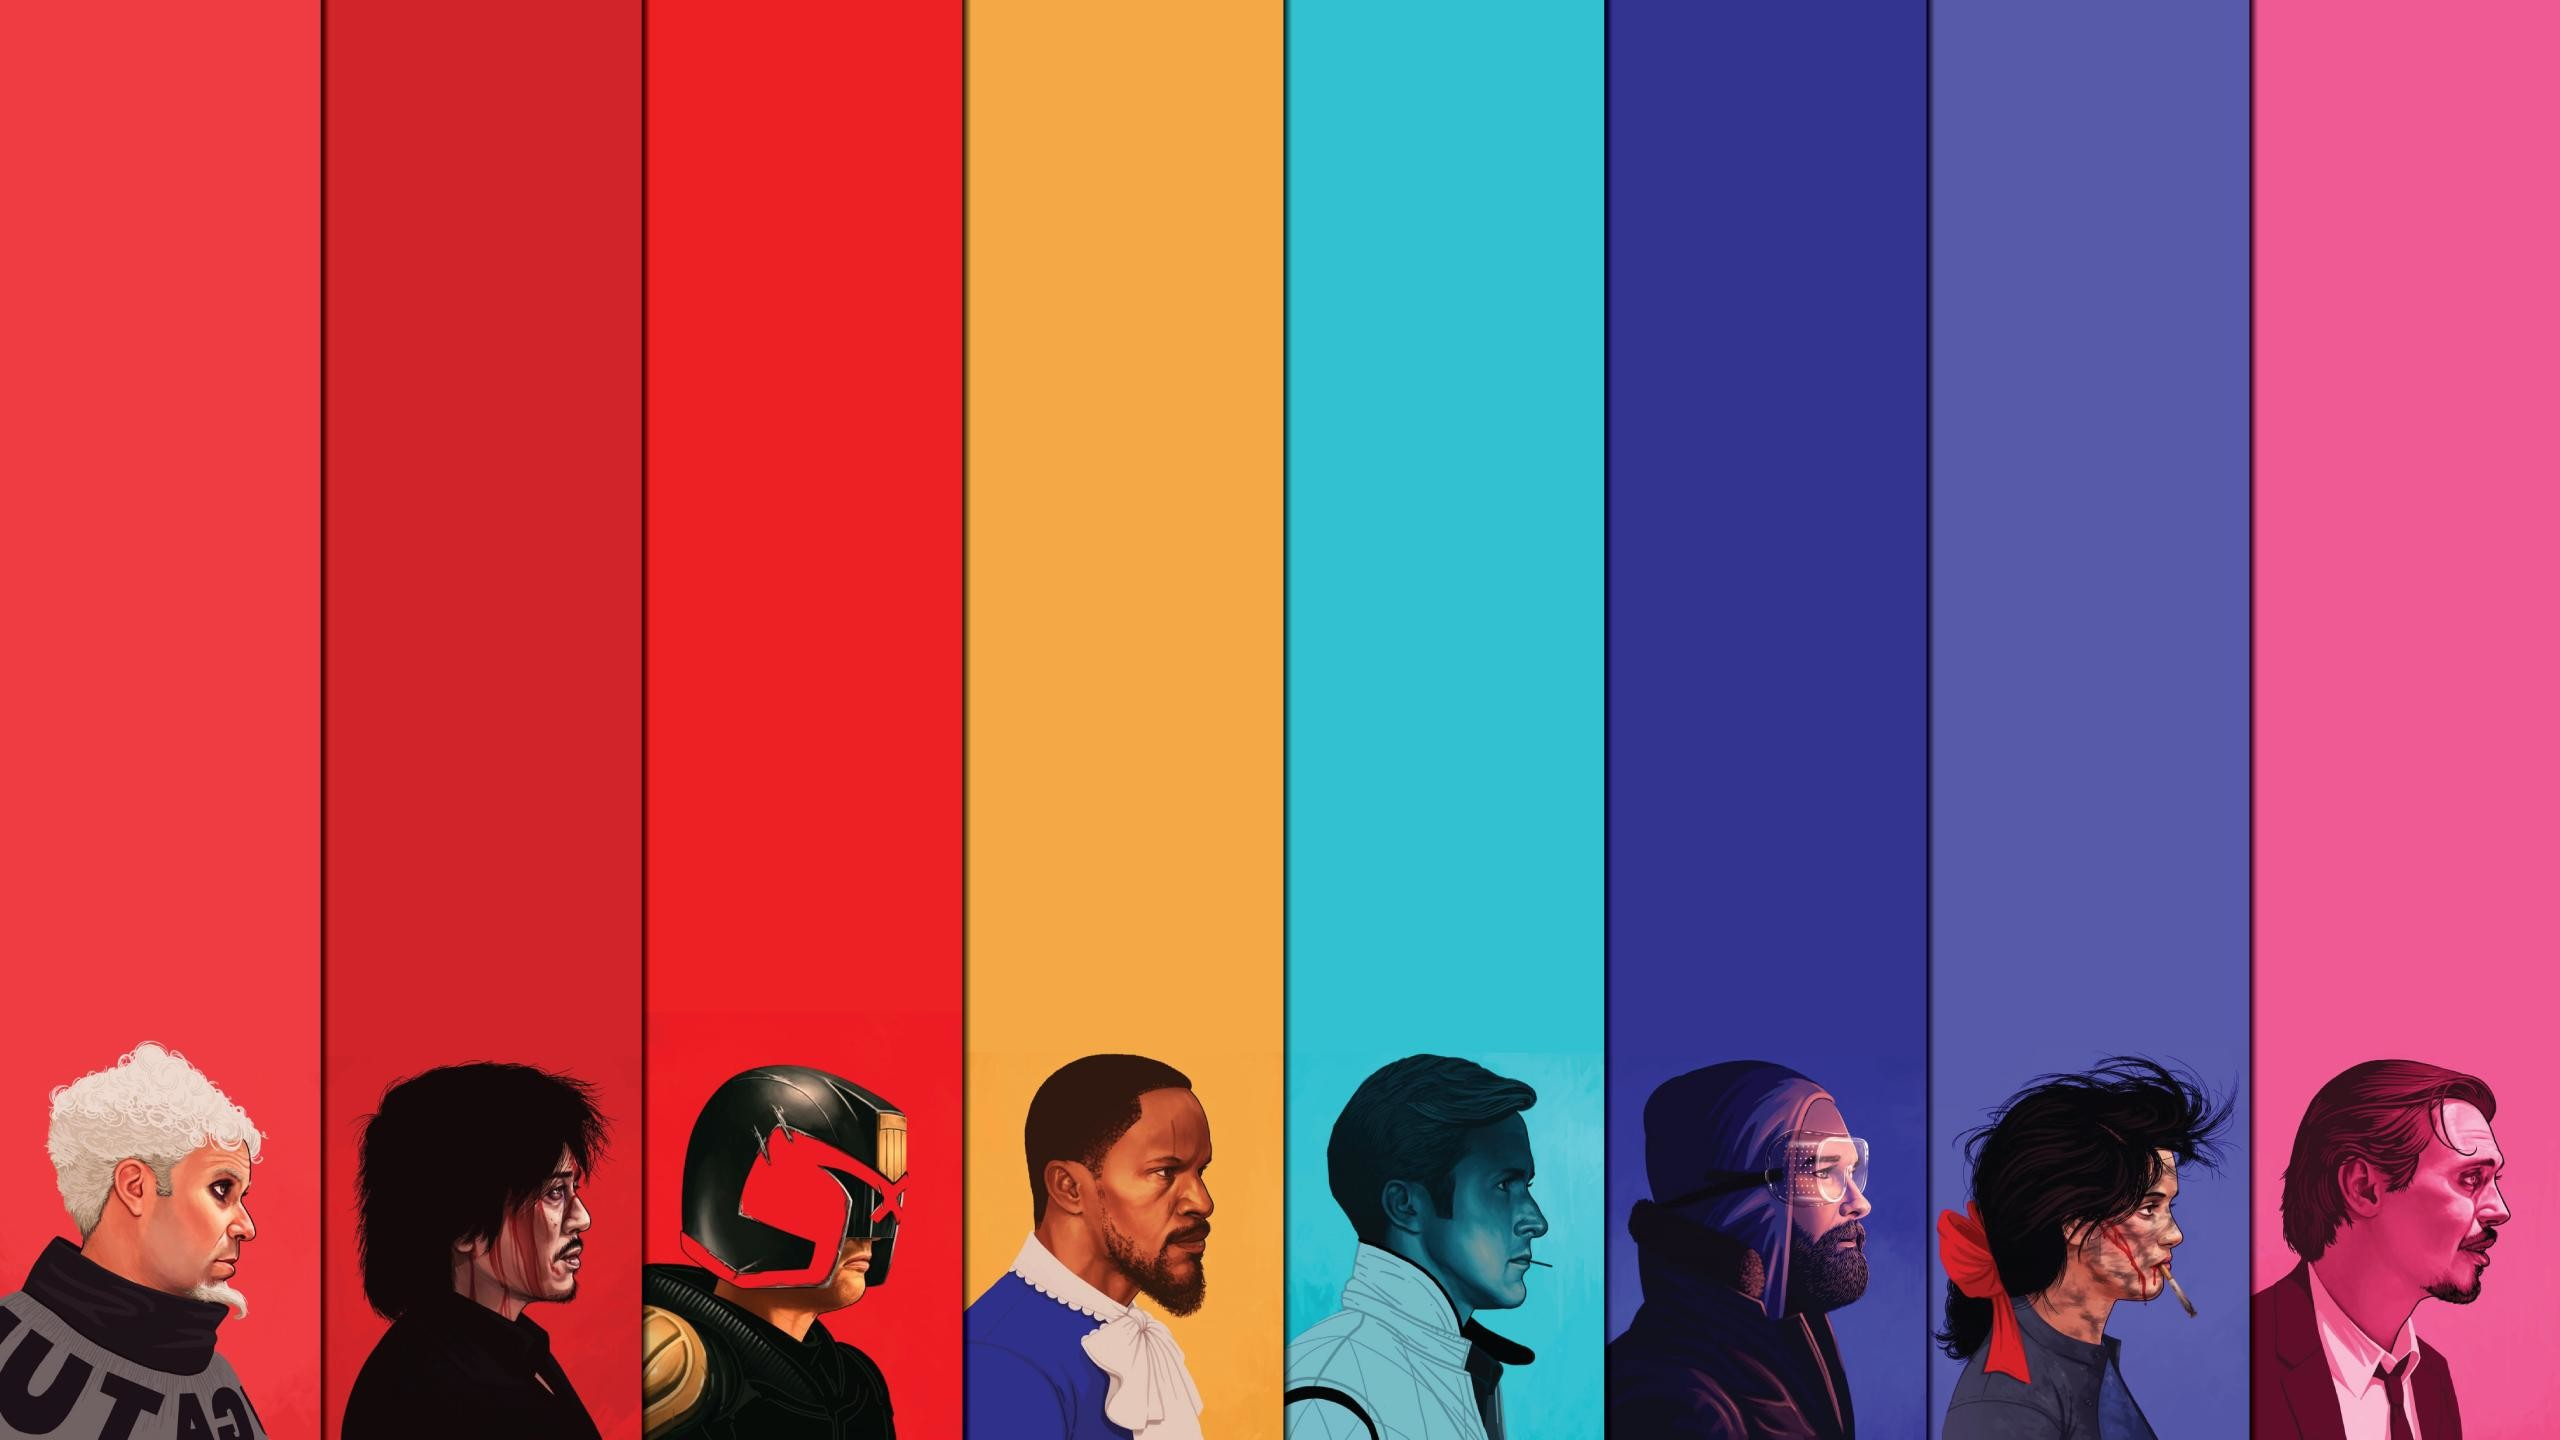 Res: 2560x1440, Colorful Judge Dredd Django Unchained Zoolander Drive The Thing Reservoir  Dog wallpaper      79501   WallpaperUP